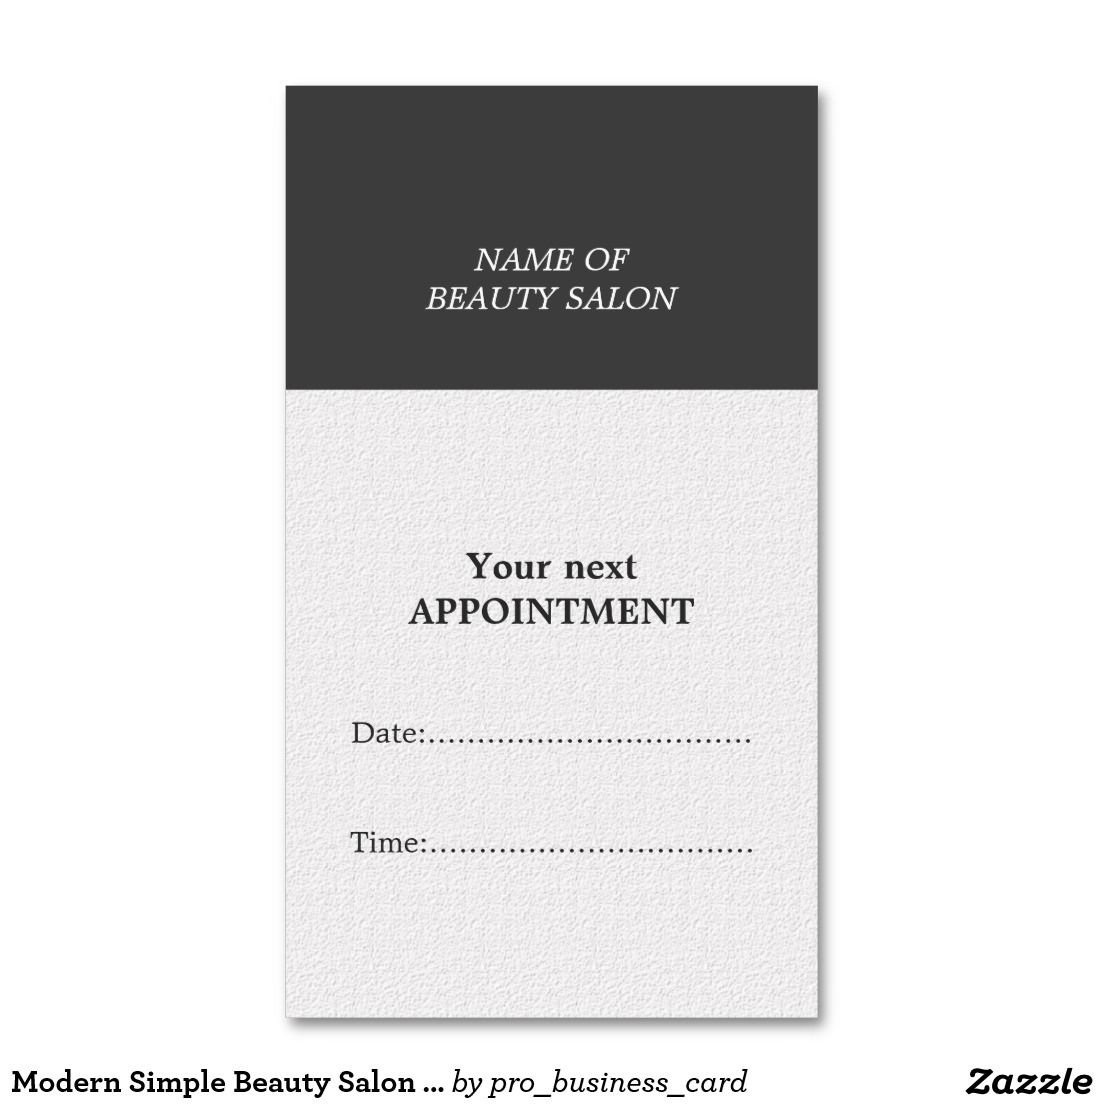 Modern Simple Beauty Salon Appointment Card Business Card ...